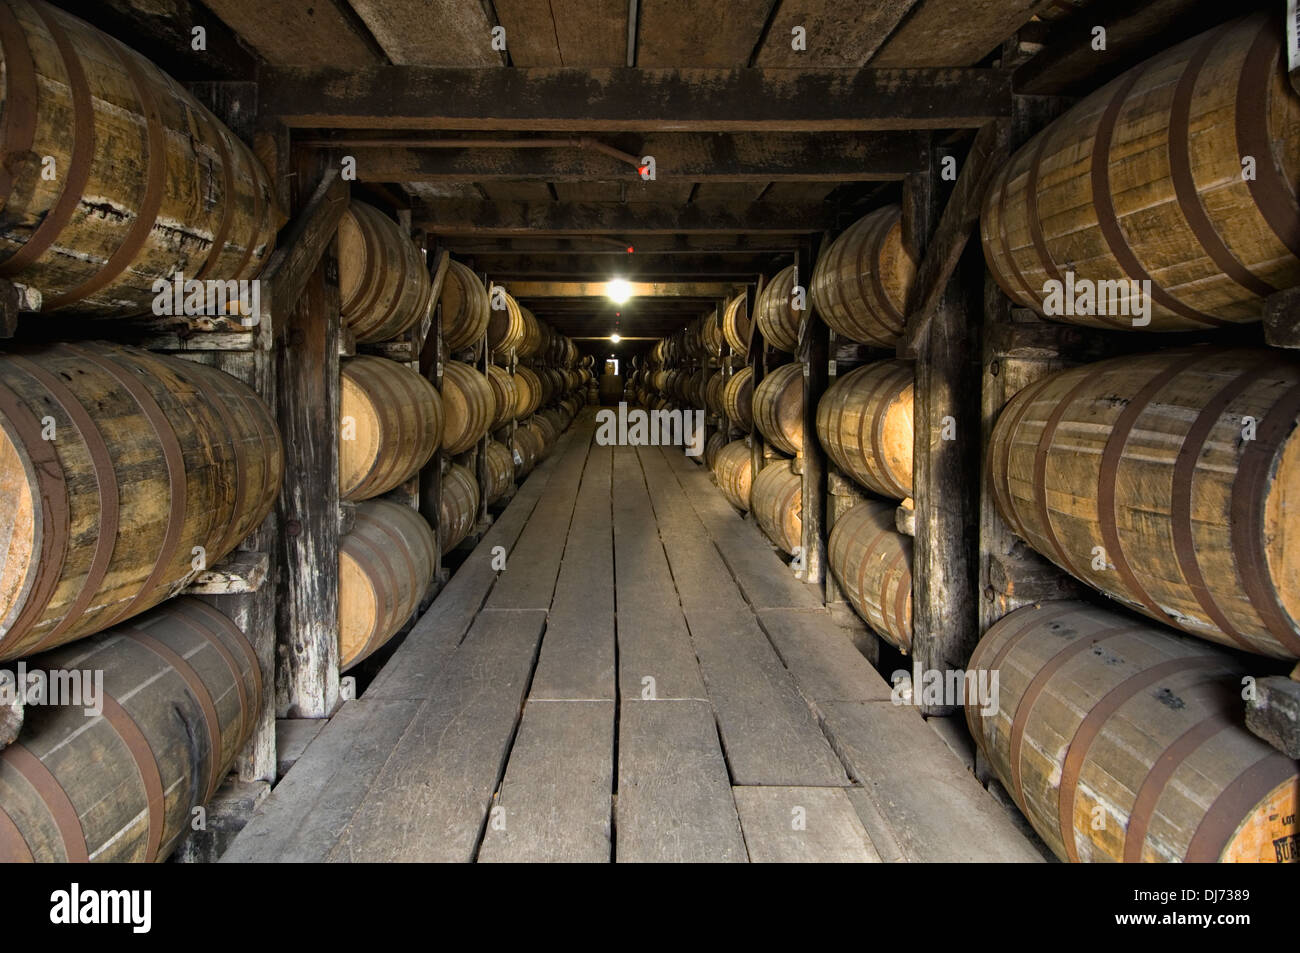 Barrels of Bourbon Aging in a Rick House at Buffalo Trace Distillery in Frankfort, Kentucky - Stock Image